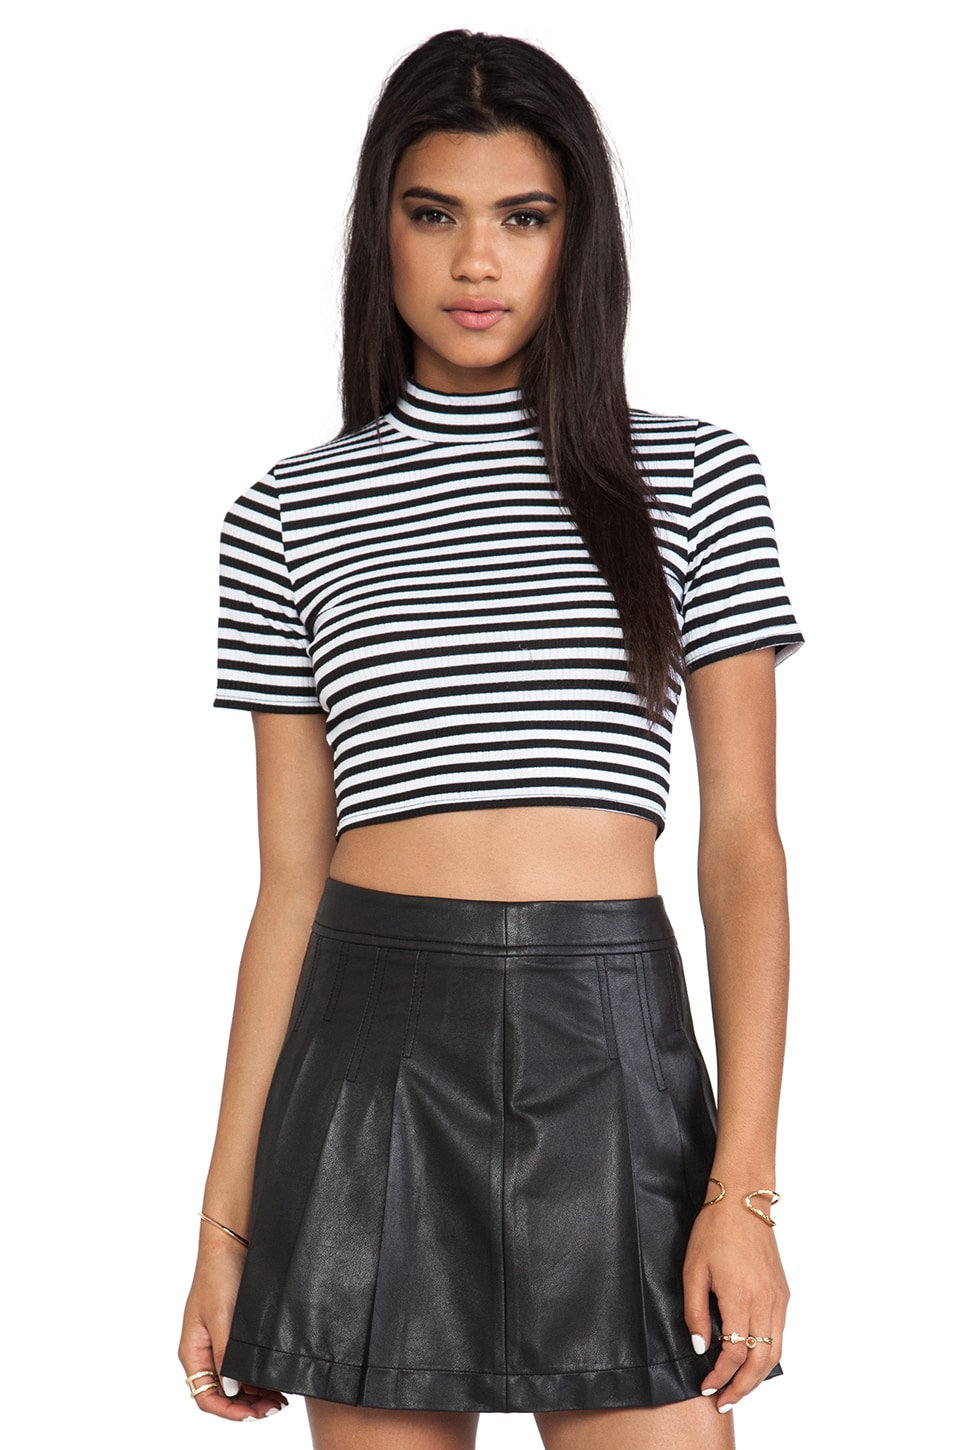 MINKPINK Cross Roads Skivvy Top in White & Black